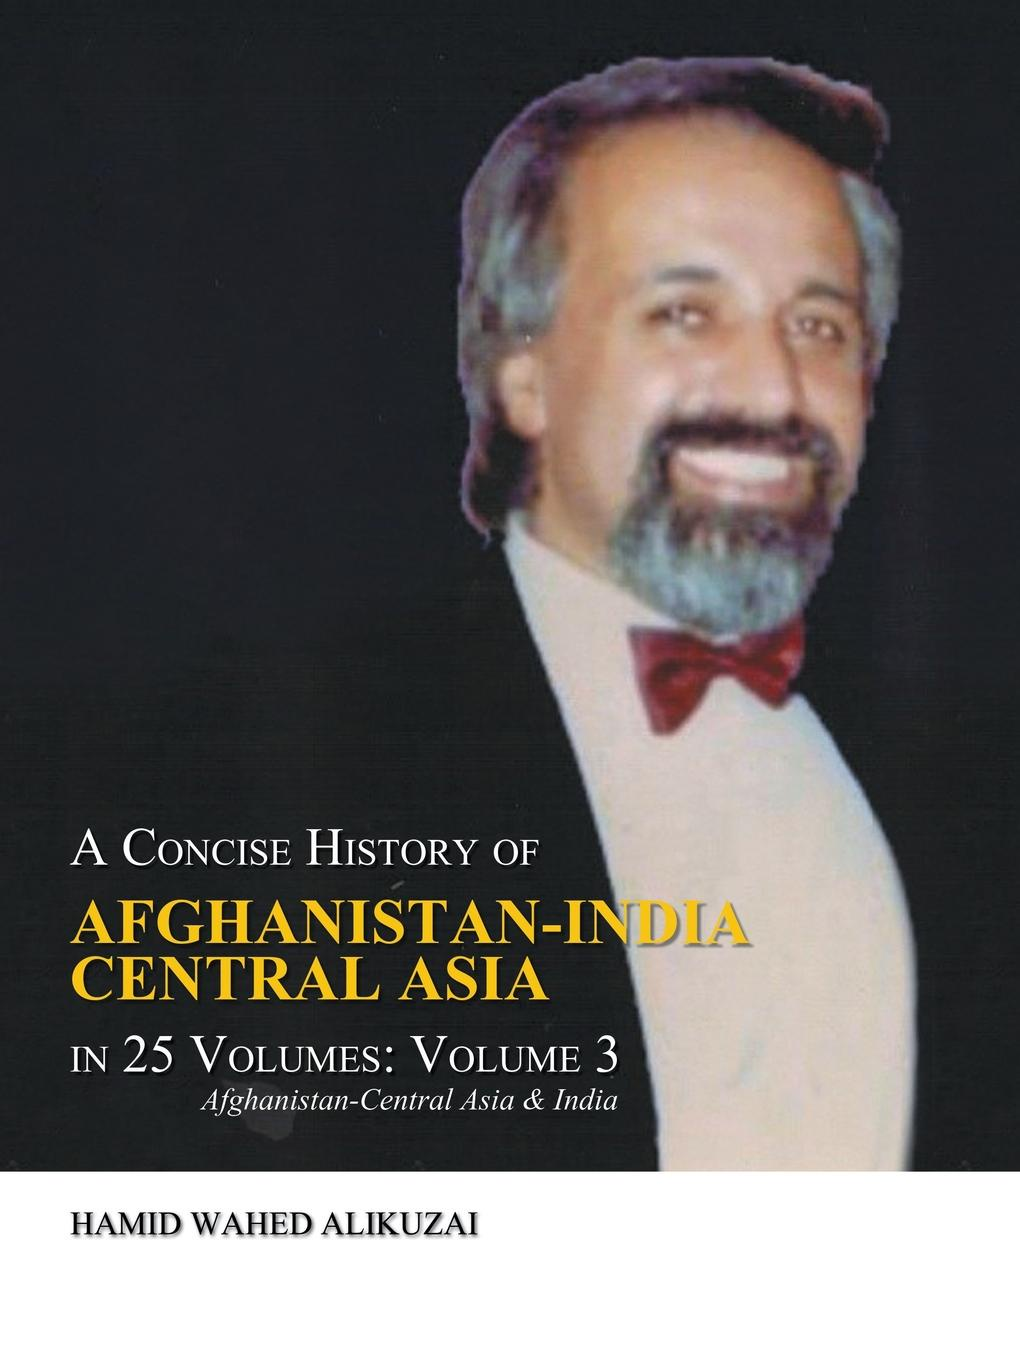 Hamid Wahed Alikuzai A Concise History of Afghanistan-India Central Asia in 25 Volumes. Volume 3: Afghanistan-Central Asia & India robert vane russell the tribes and castes of the central provinces of india volume 3